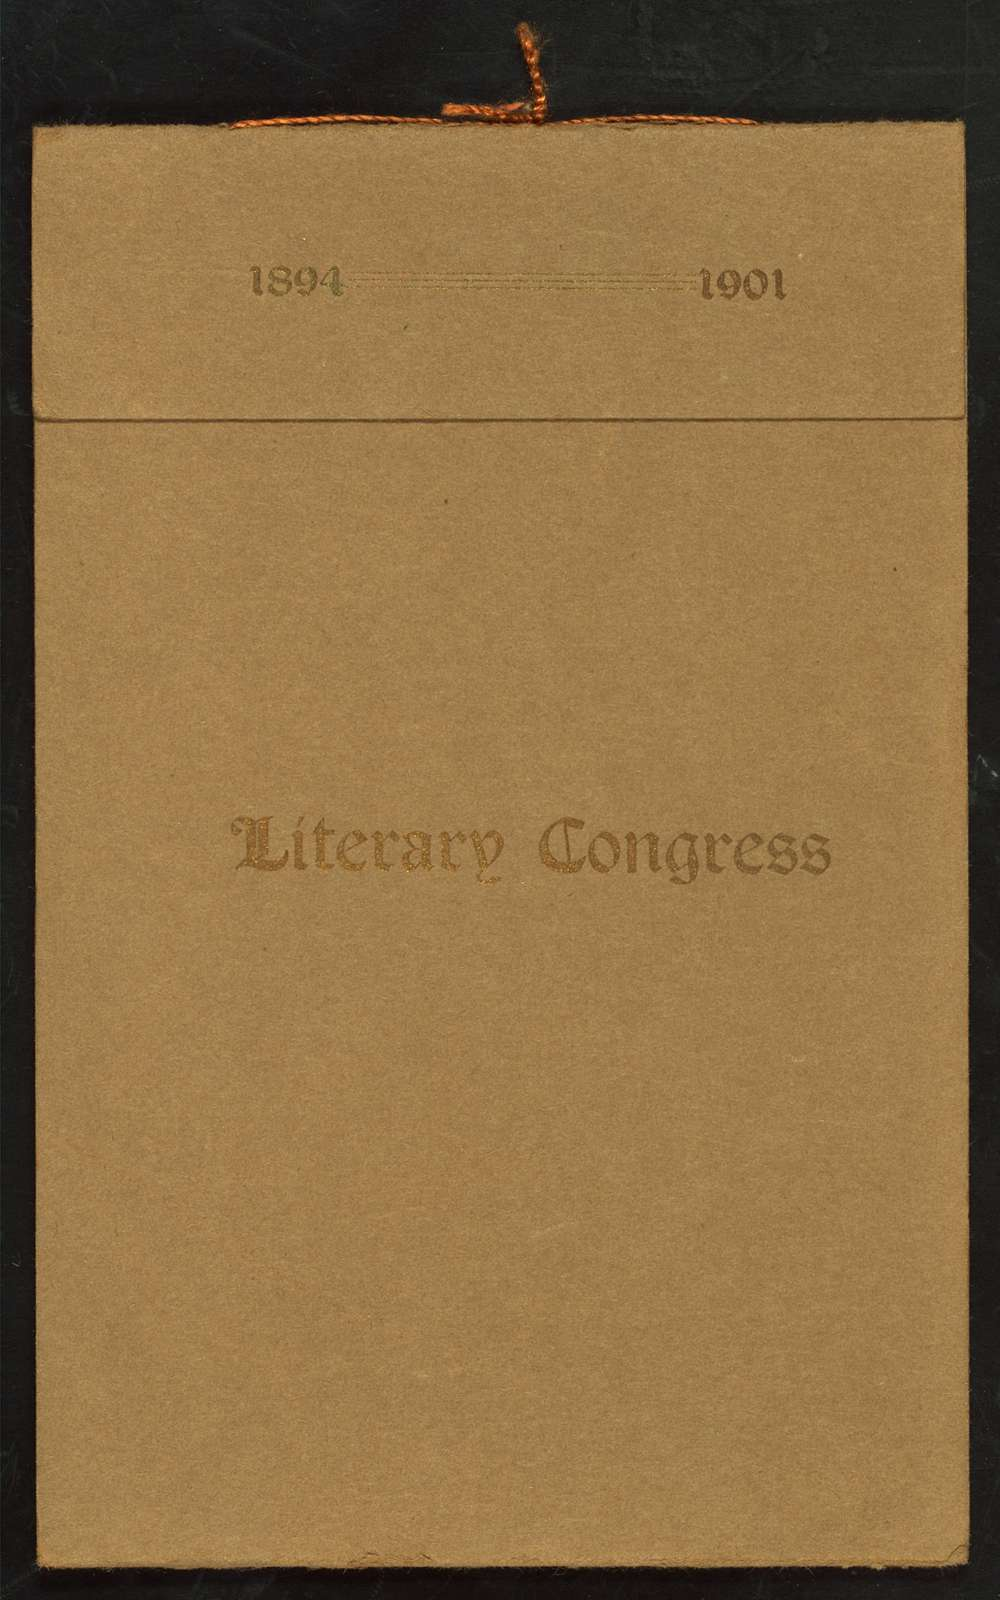 """EIGHTH ANNUAL CONGRESS [held by] LITERARY CONGRESS OF CLUBS [at] """"COOPER HALL, BLOOMINGTON, IL"""" (OTHER (HALL);)"""